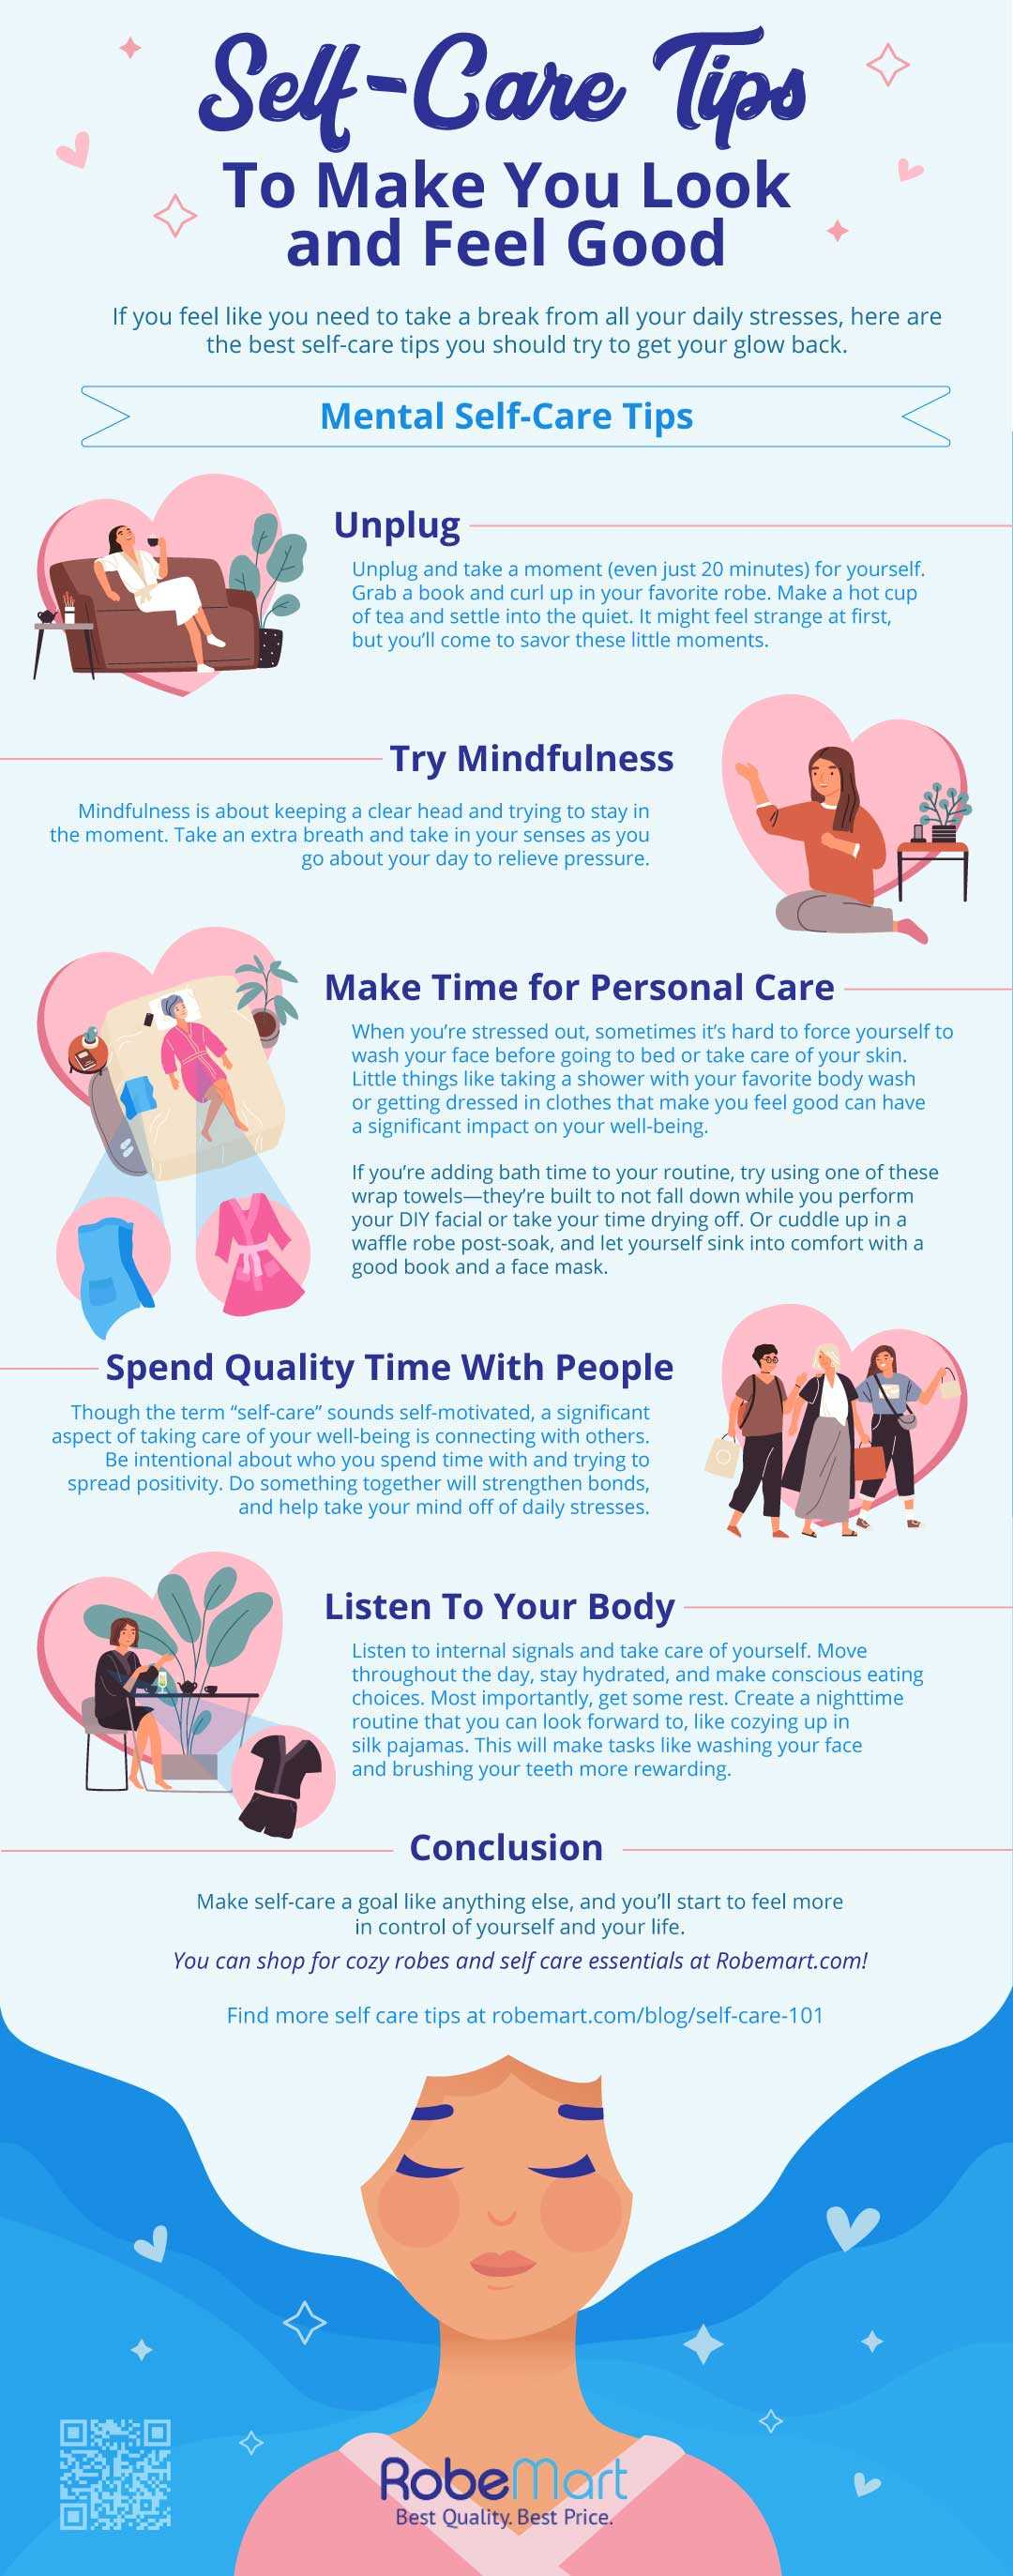 Self-Care Tips To Make You Look And Feel Good